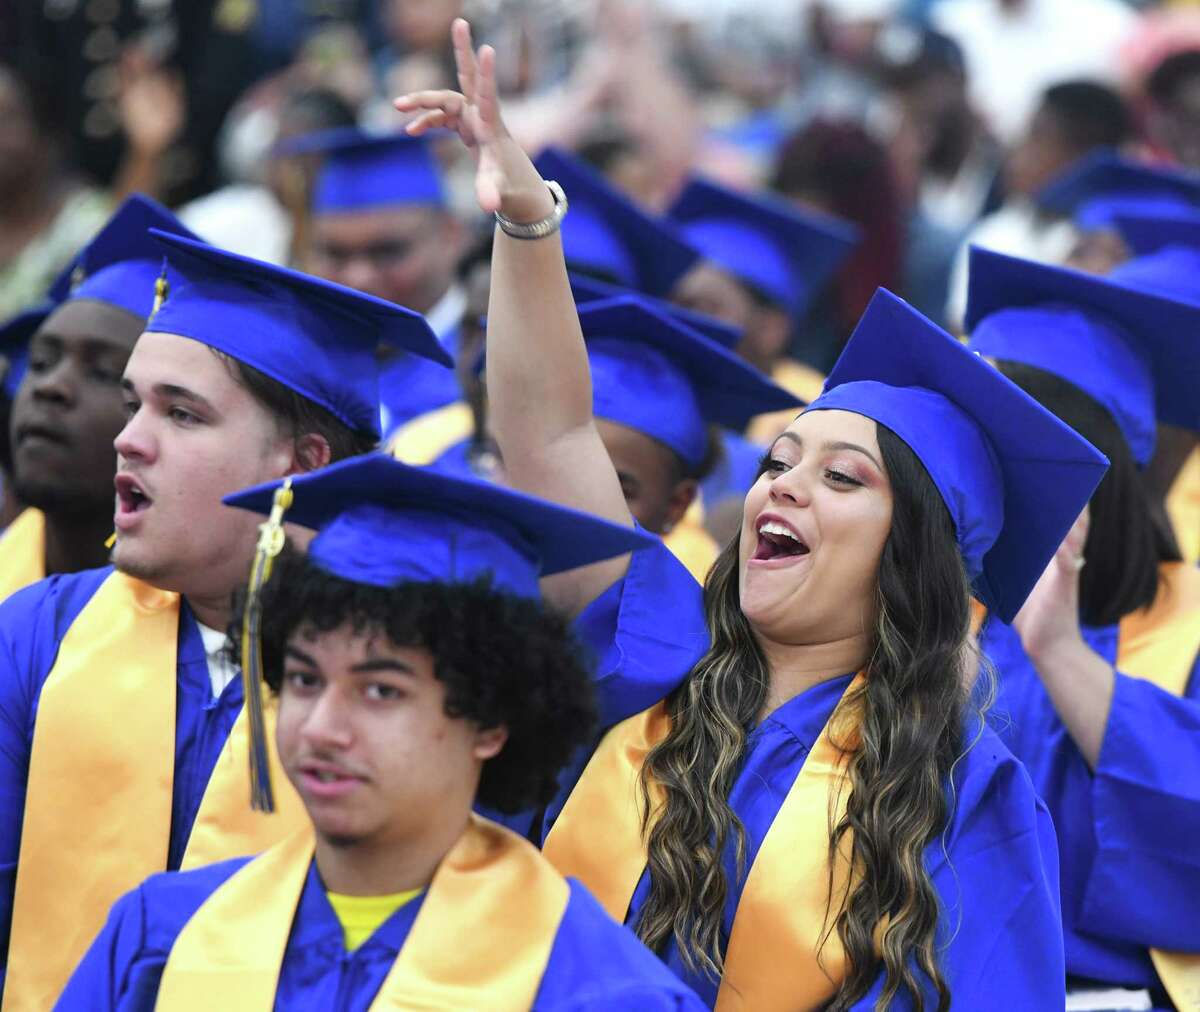 Graduating senior Damarys Seda cheers during the 93rd Annual Commencement at Warren Harding High School in Bridgeport, Conn. Tuesday, June 18, 2019. The Class of 2019 was the first to graduate from the new Warren G. Harding High School on the long-awaited Bond Street location.